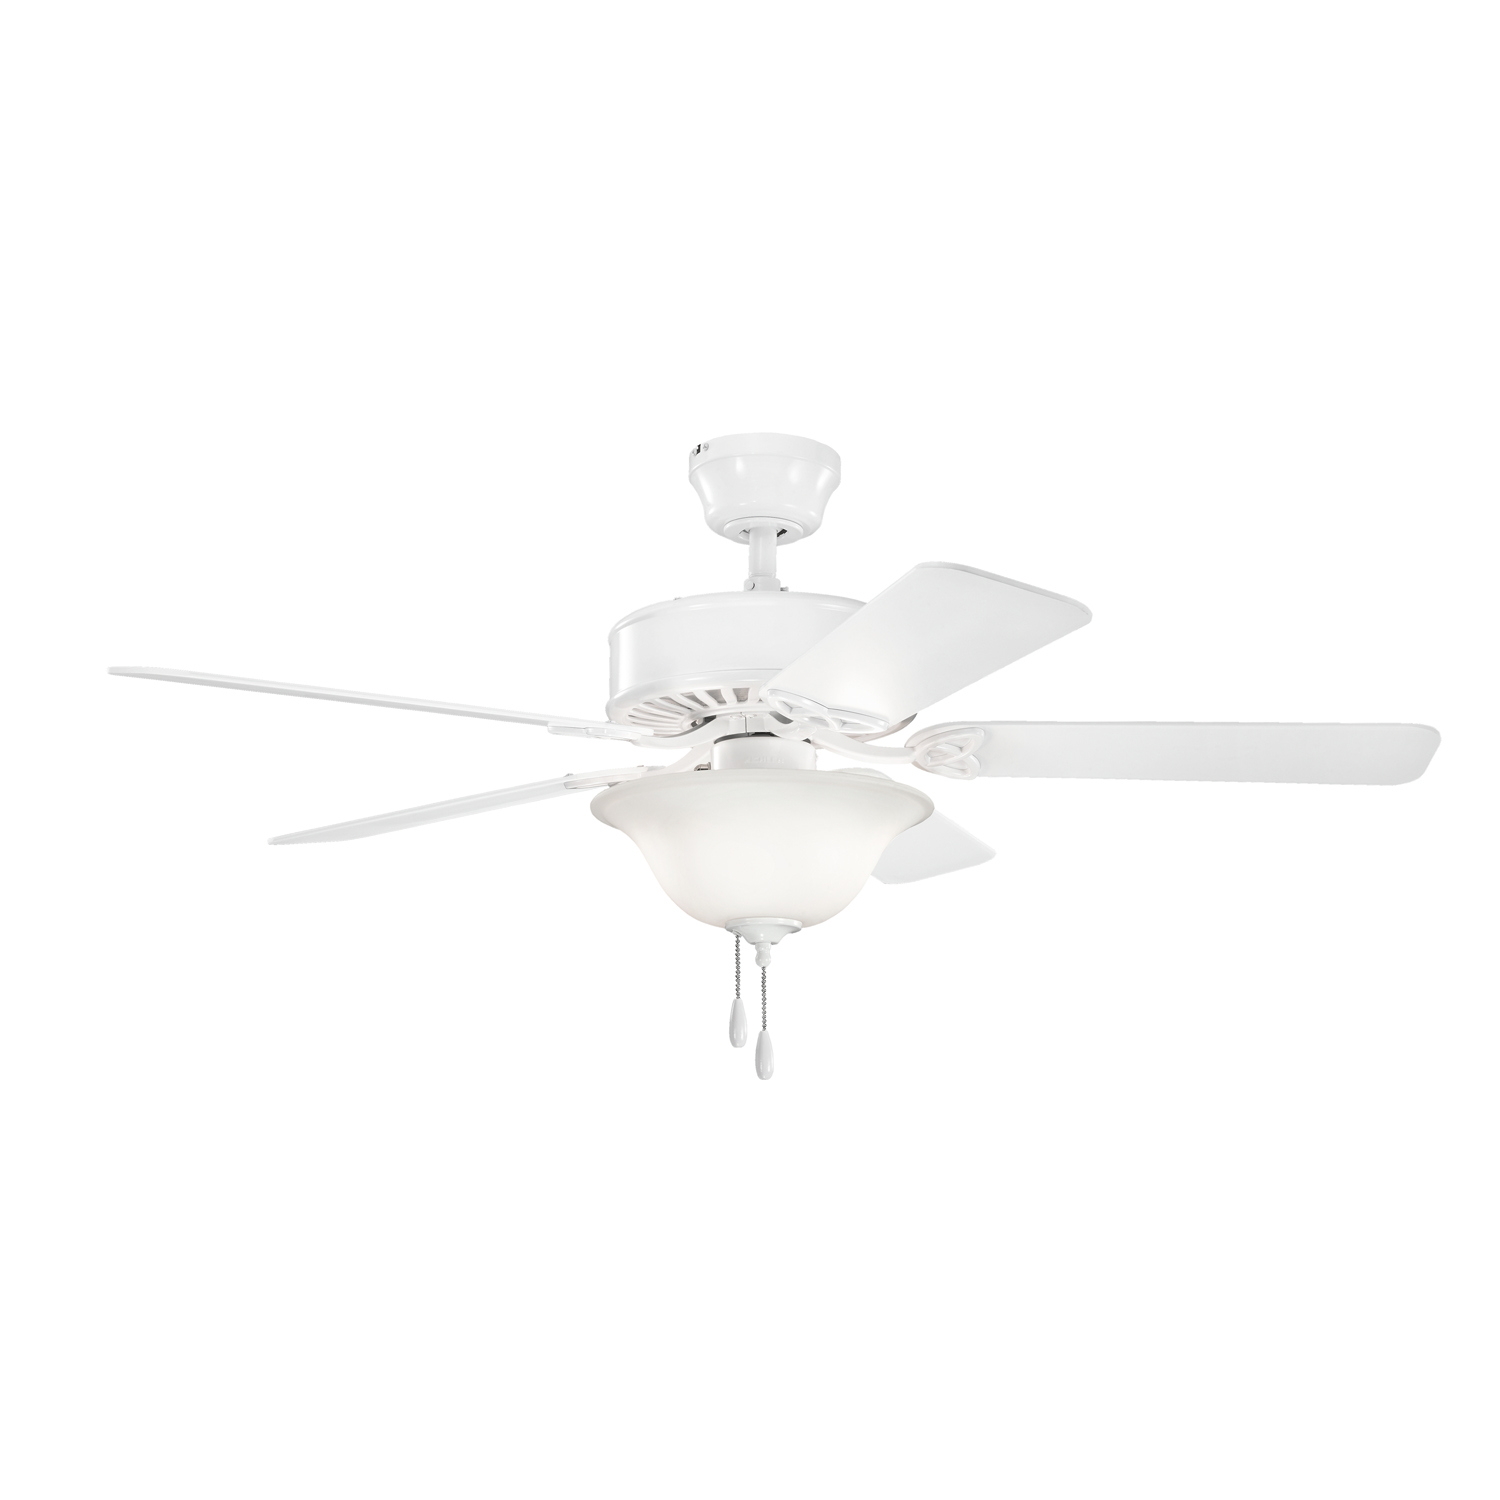 50 inchCeiling Fan from the ES collection by Kichler 330103WH